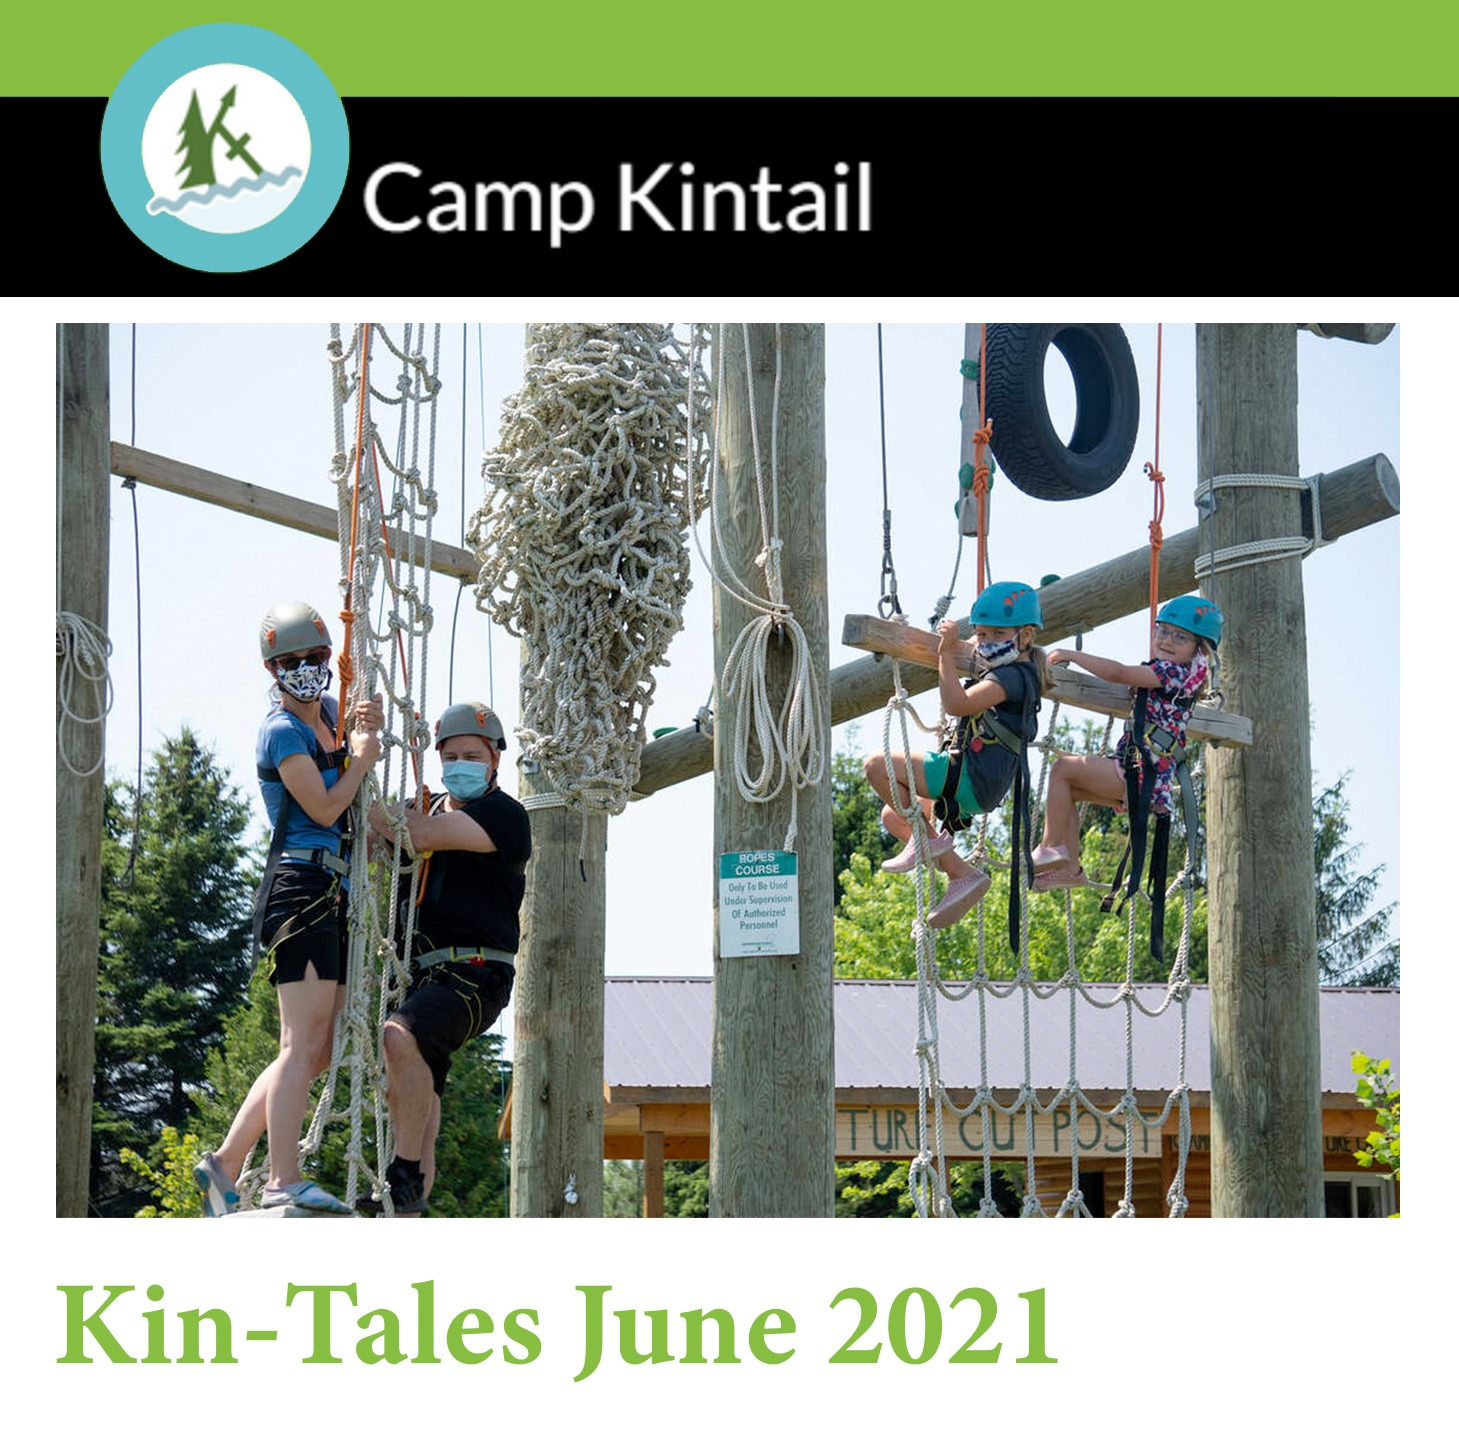 Title Text: Kin-Tales July 2021. Image: A family smiles on the high ropes course.